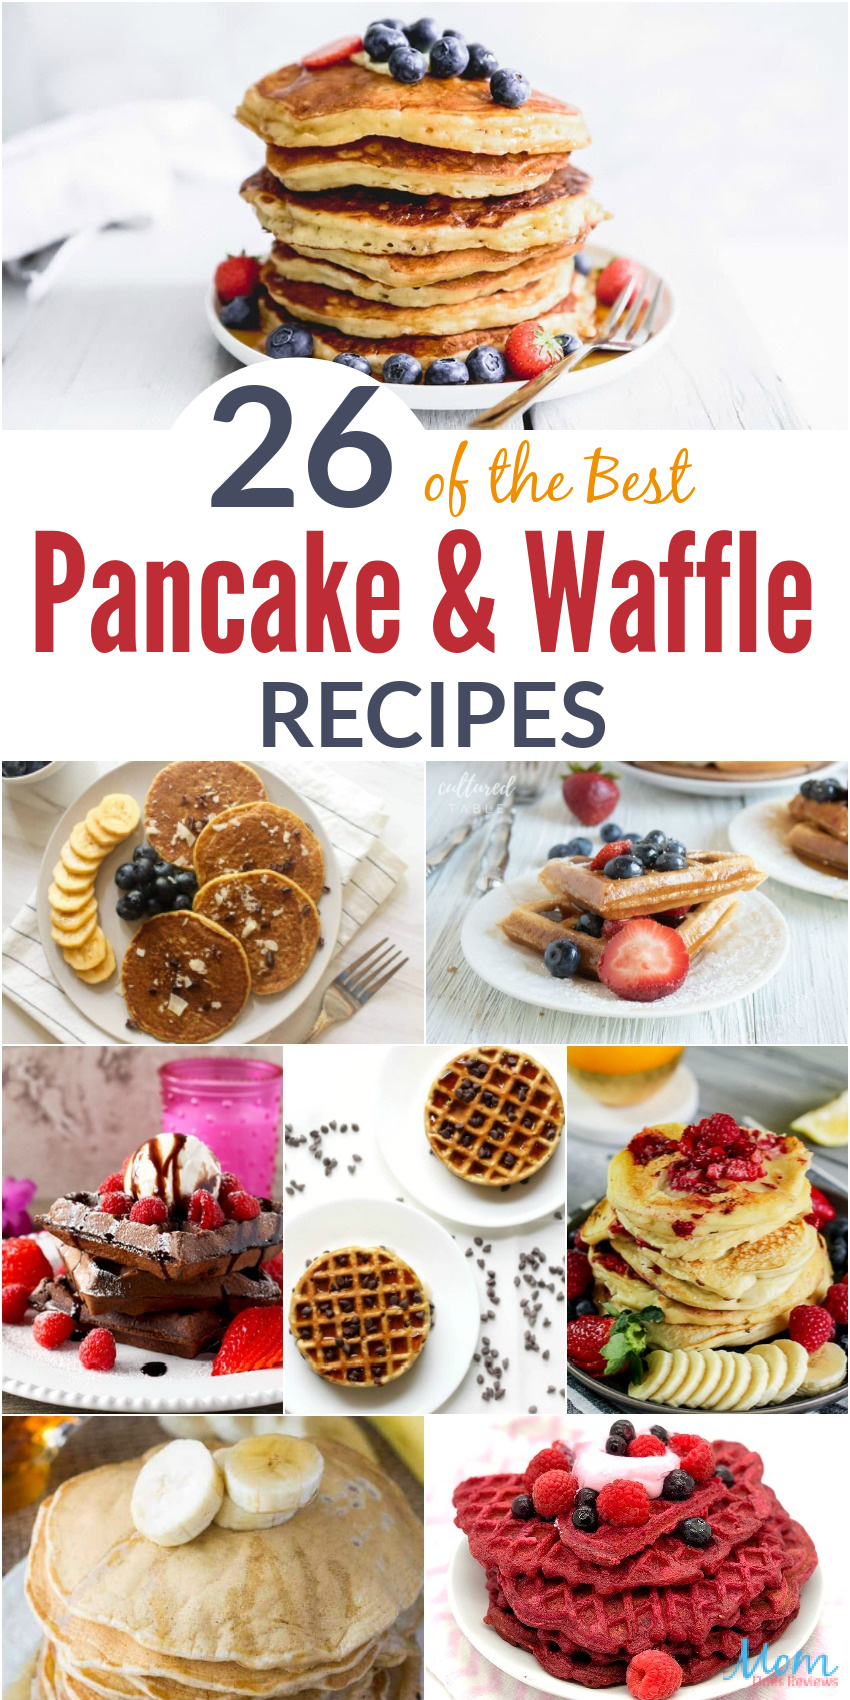 26 of the Best Pancake & Waffle #Recipes #breakfast #foodie